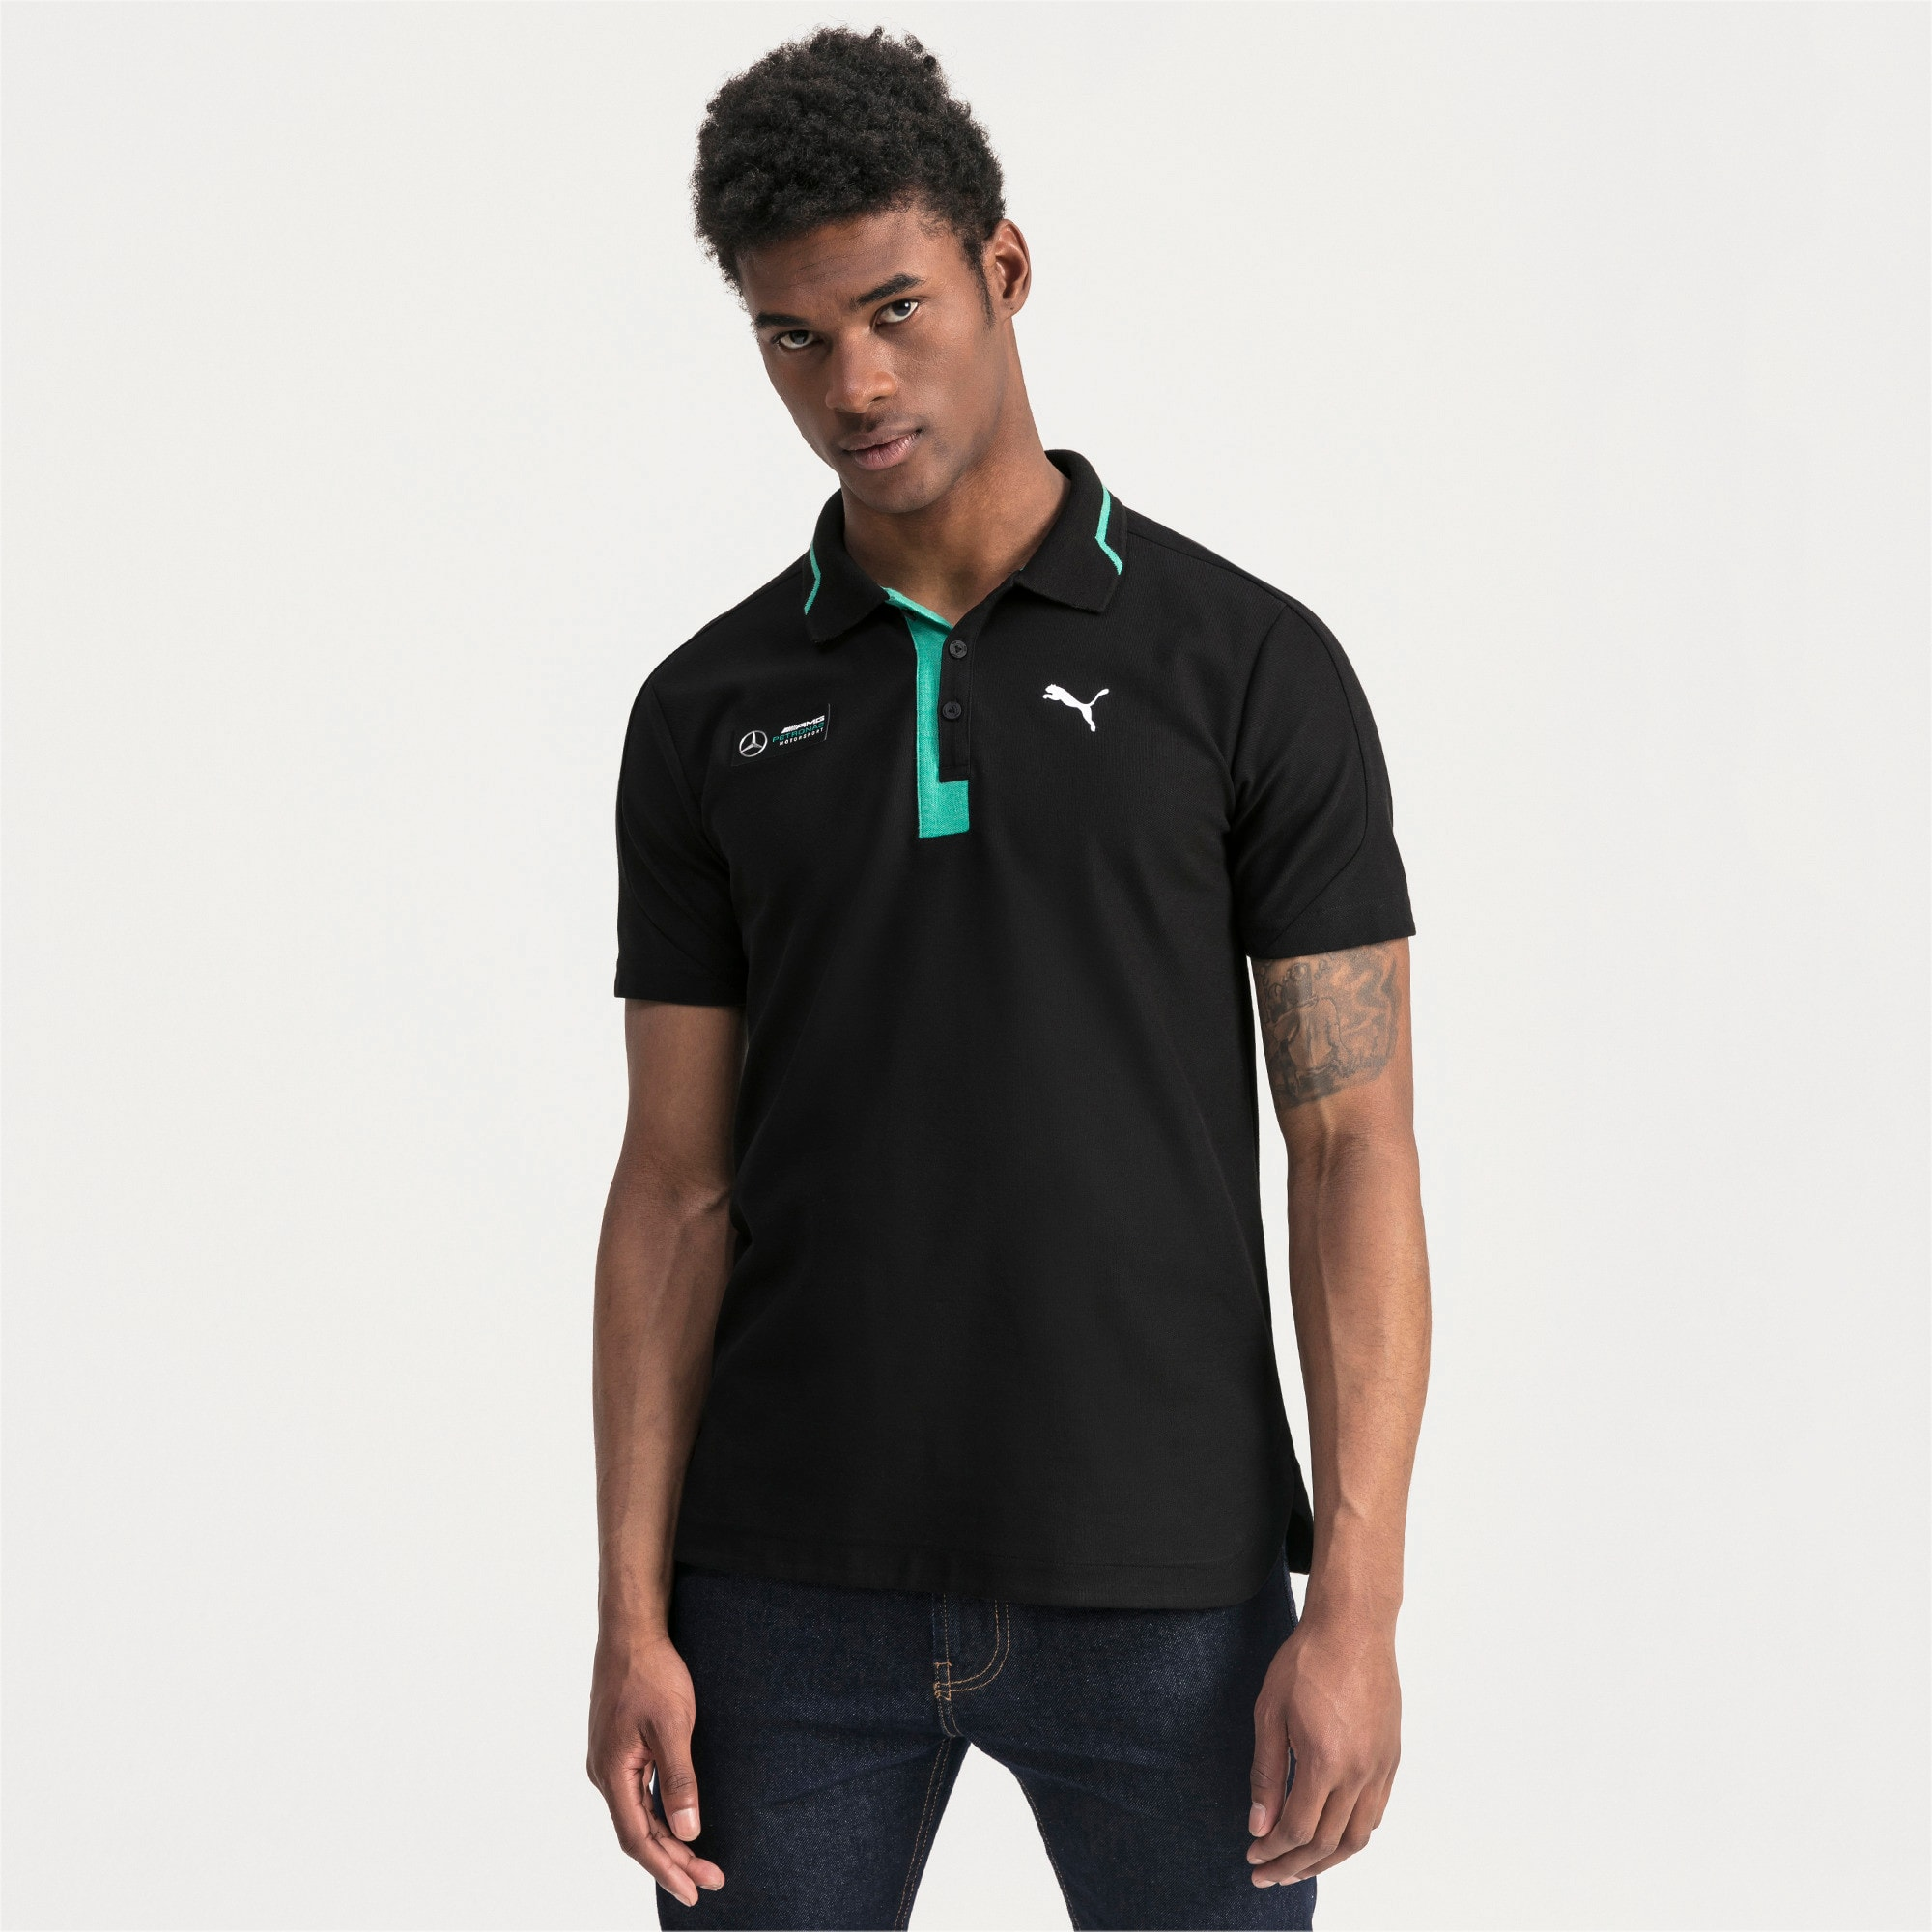 Thumbnail 1 of Mercedes AMG Petronas Men's Polo Shirt, Puma Black, medium